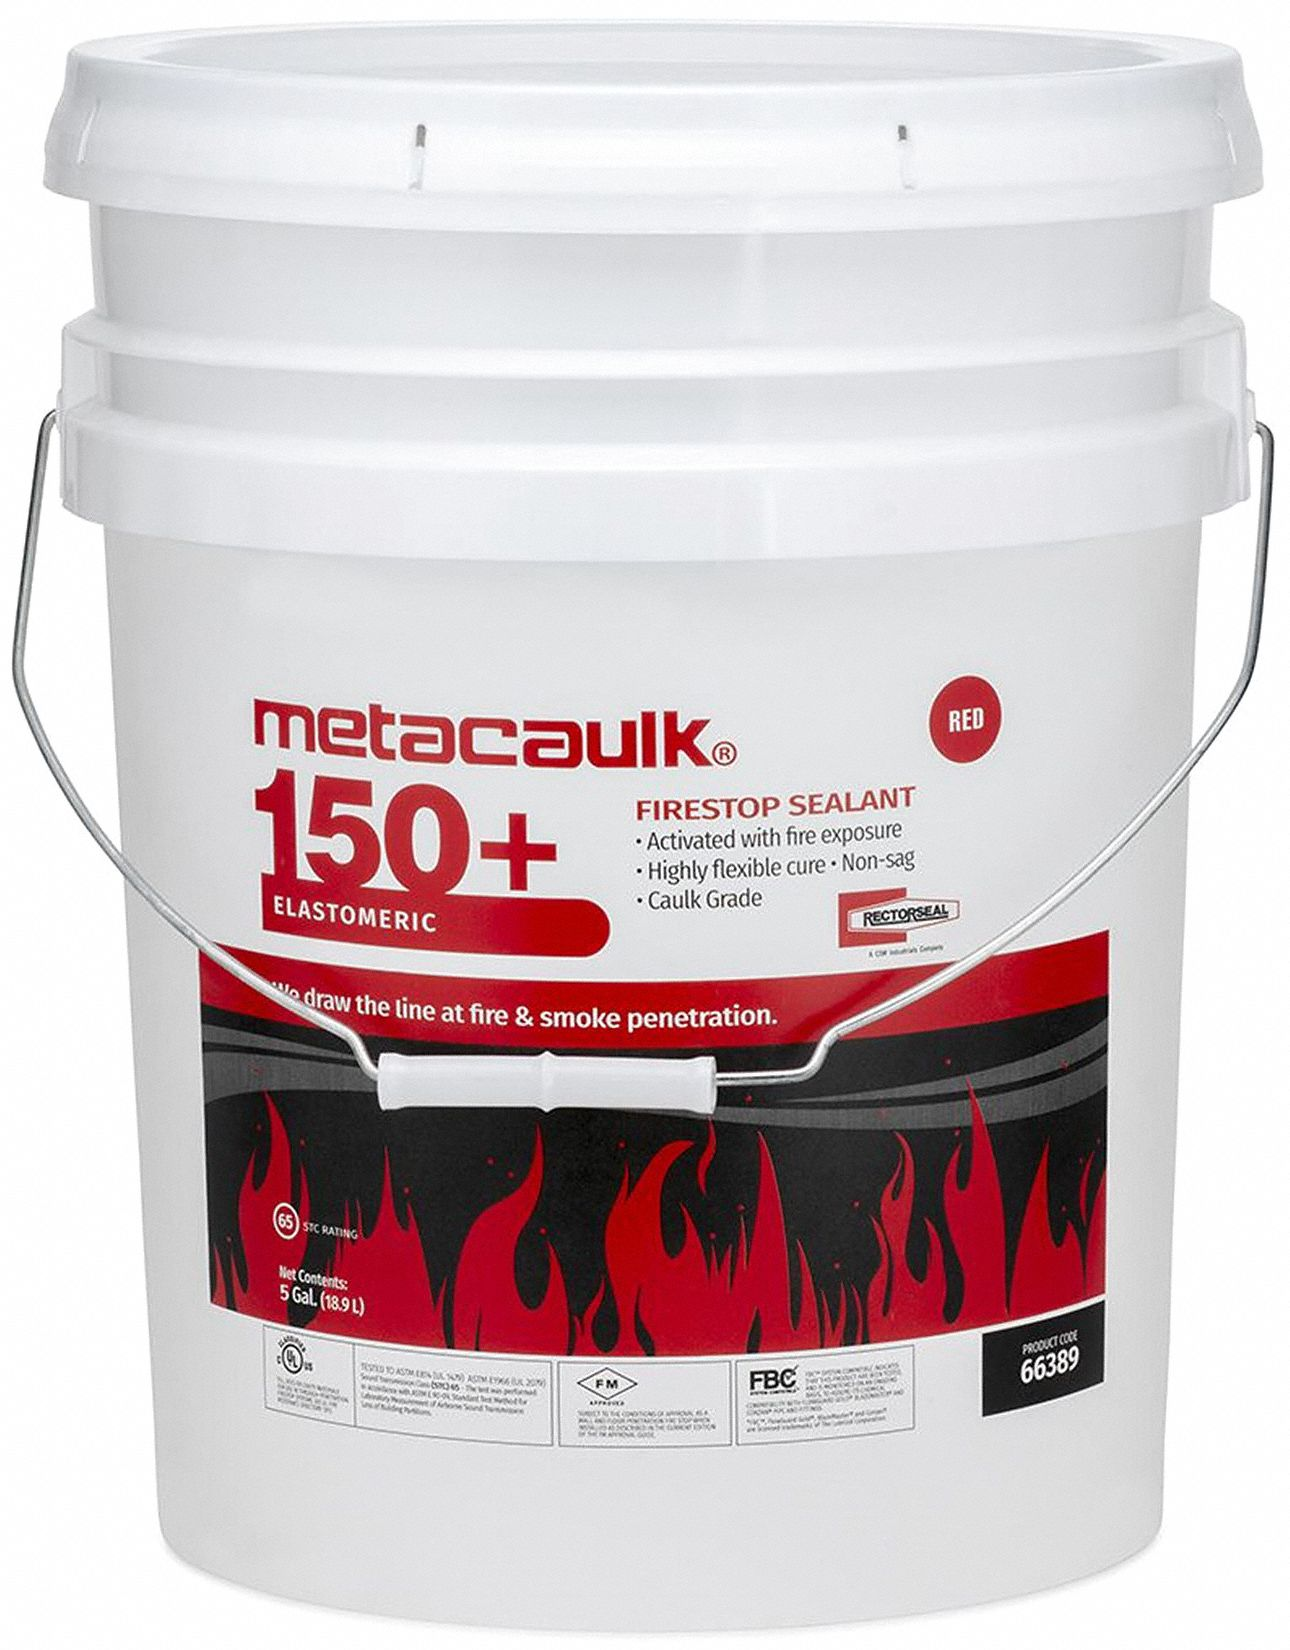 Firestop Sealant, 5 gal Pail, Up to 4 hr Fire Rating, Red